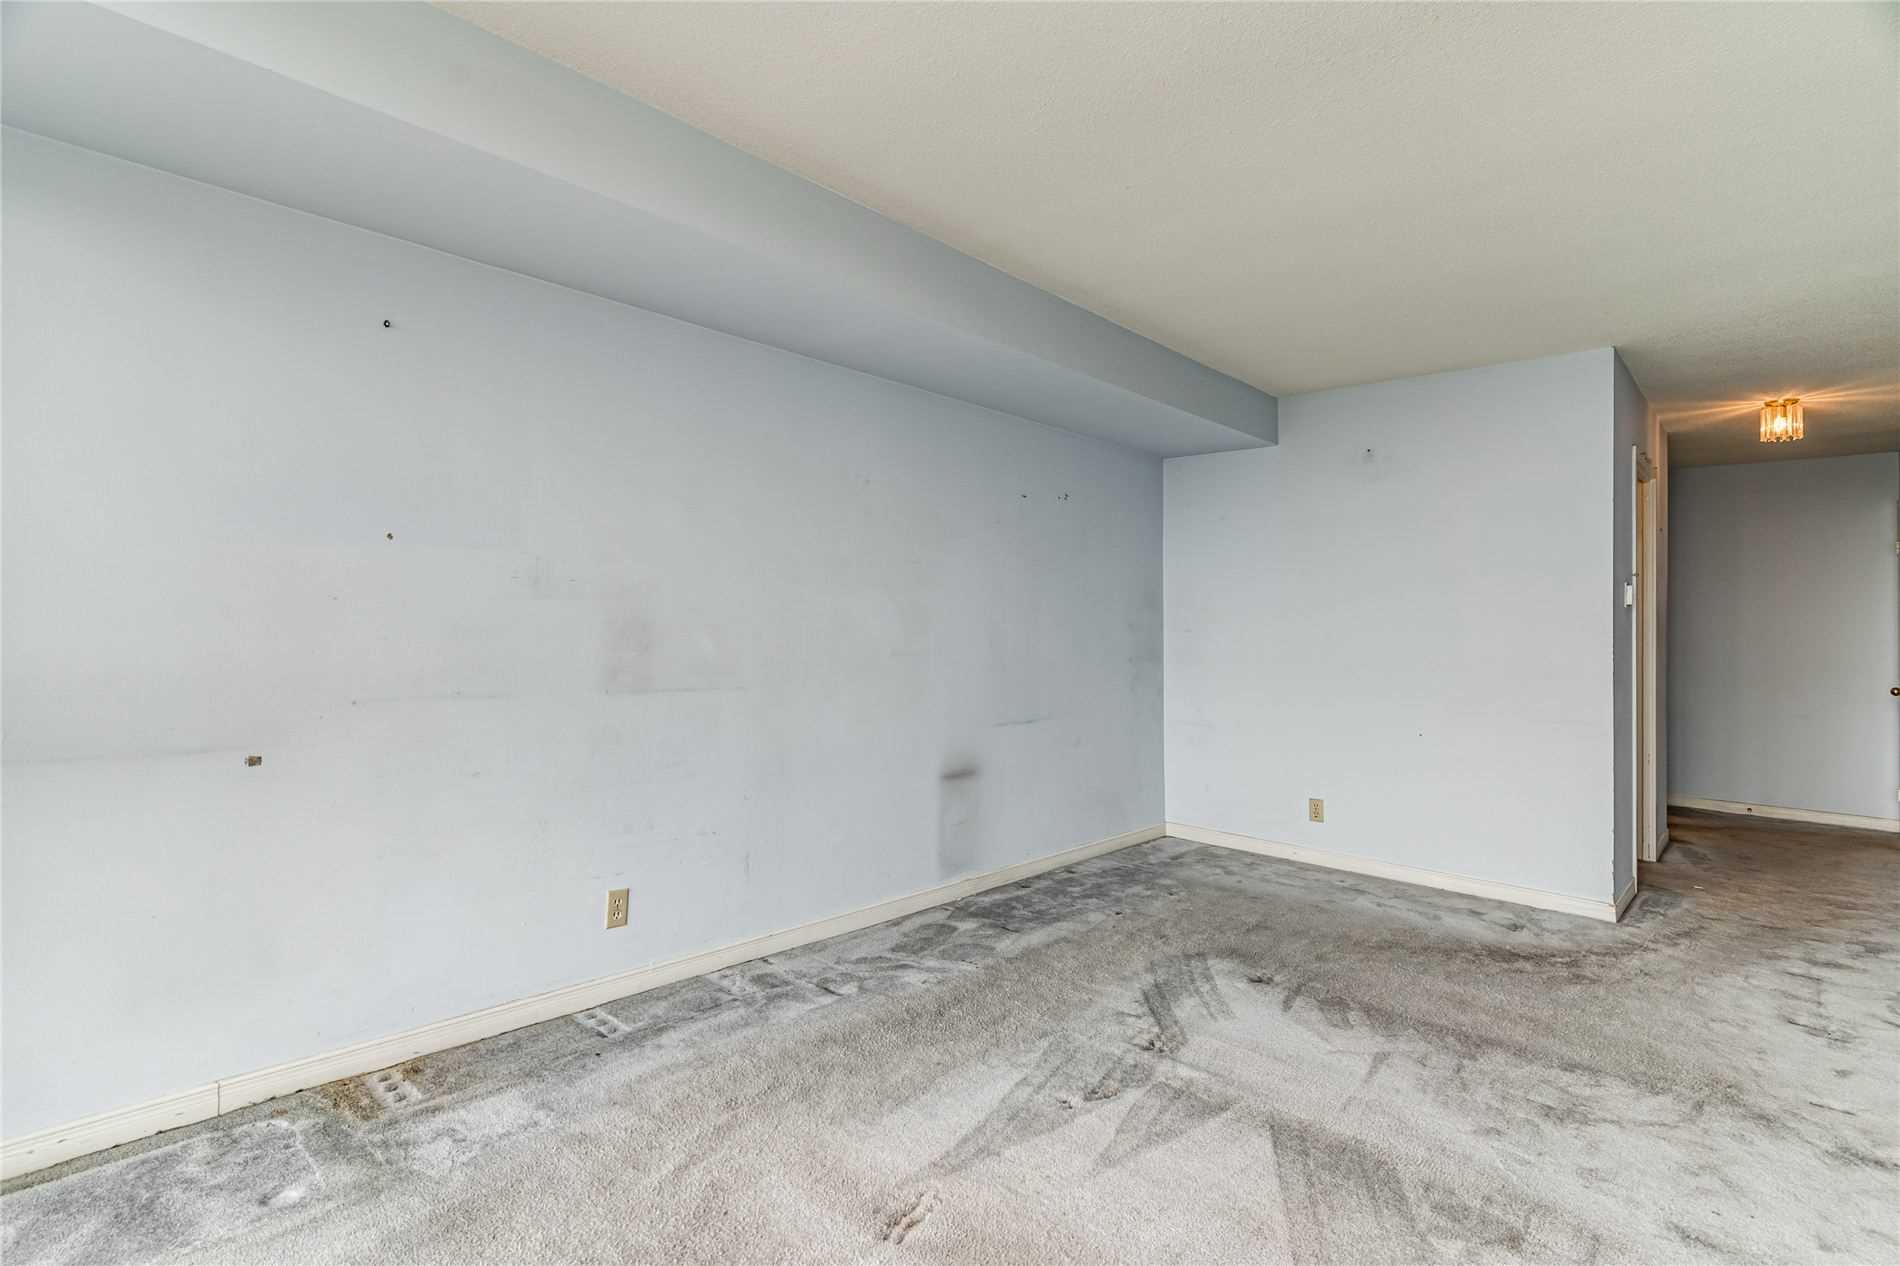 Image 31 of 40 showing inside of 2 Bedroom Condo Apt Apartment for Sale at 1665 Pickering Pkwy Unit# 812, Pickering L1V6L4